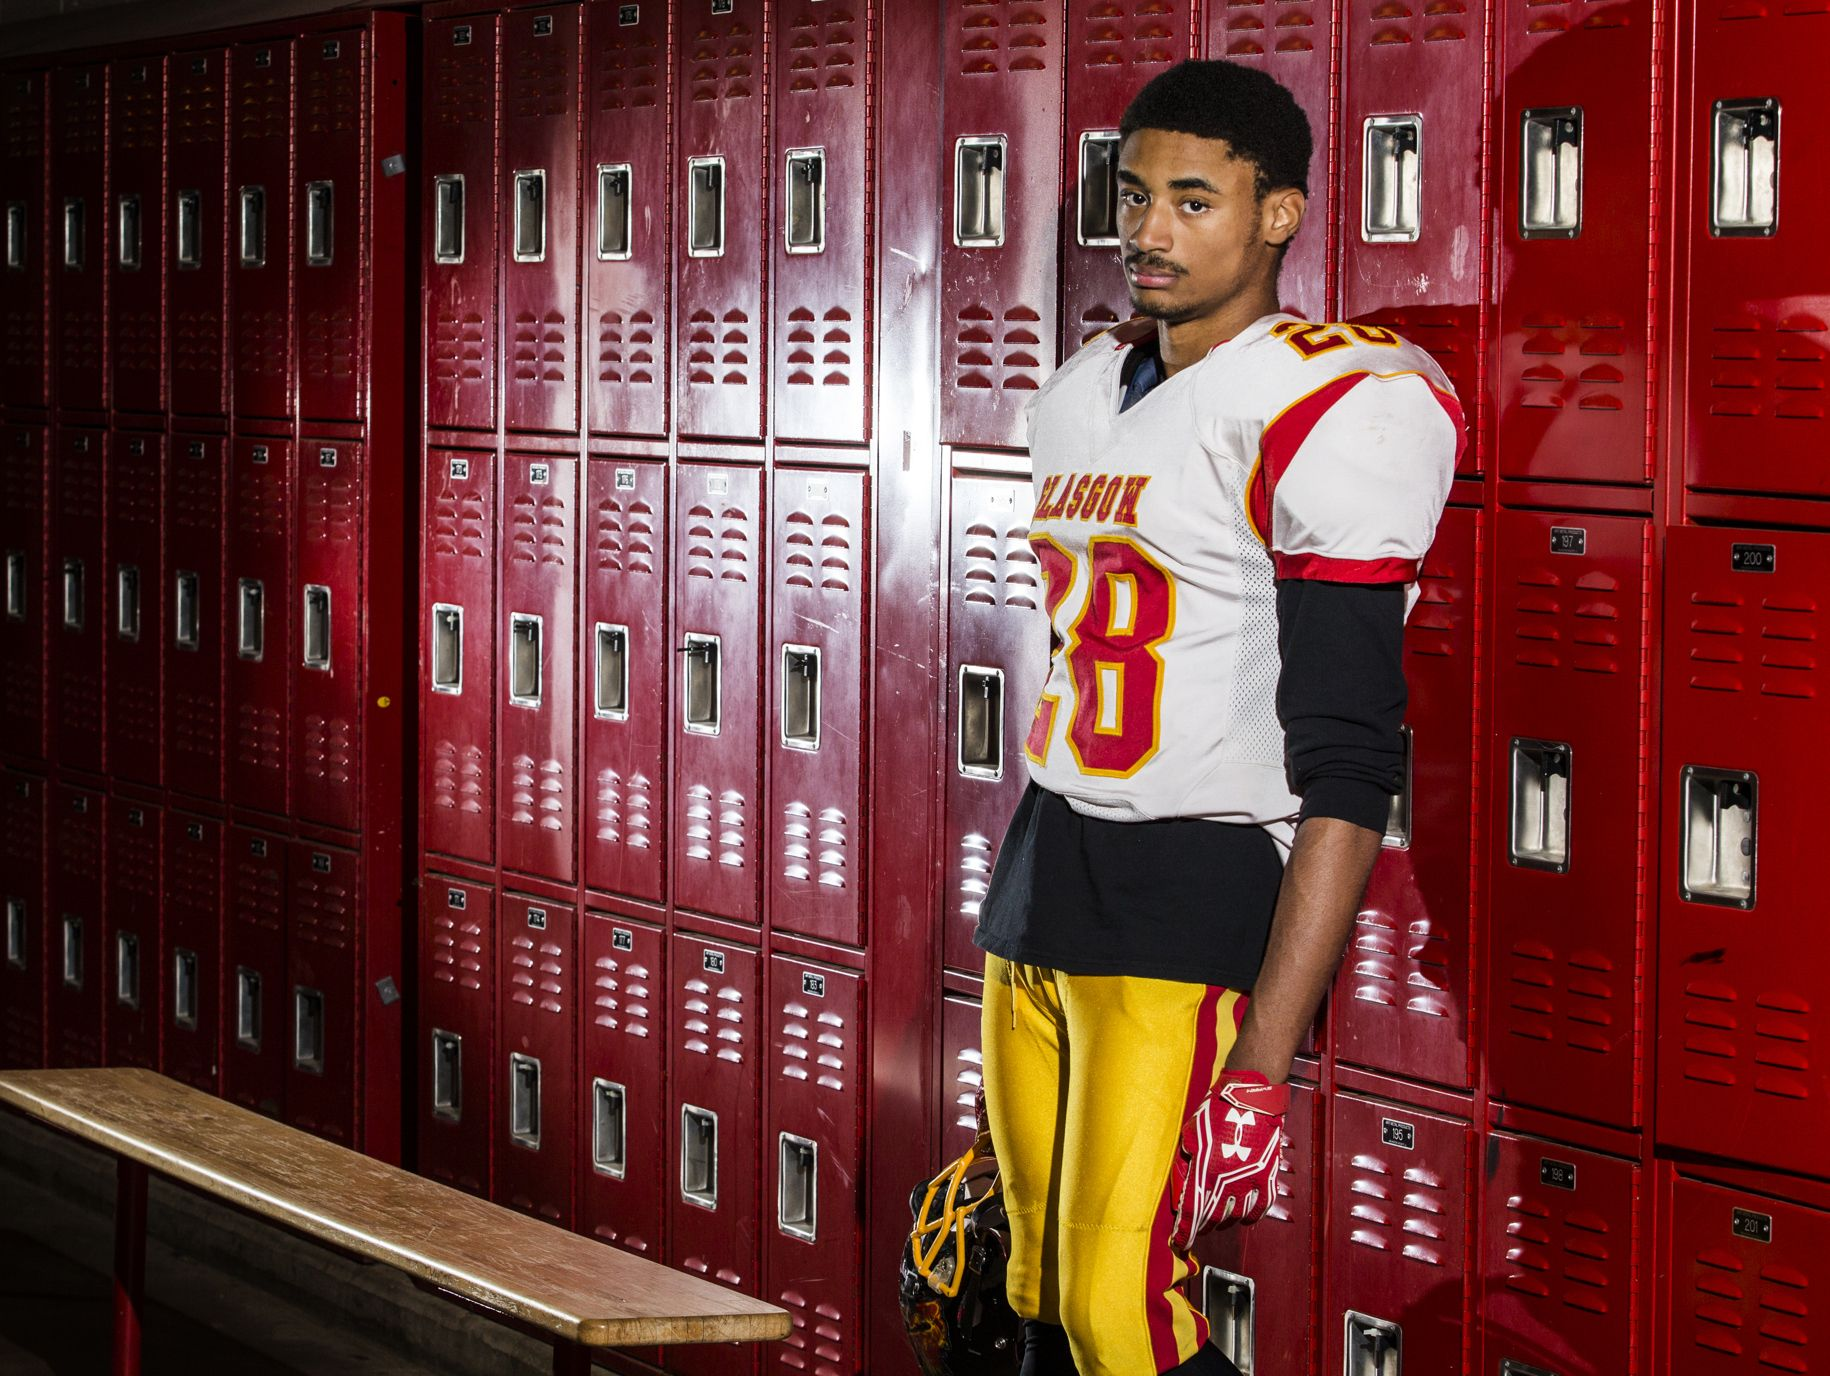 Glasgow's Tymere Wilson poses for a portrait in the locker room at Glasgow High School on Monday afternoon.